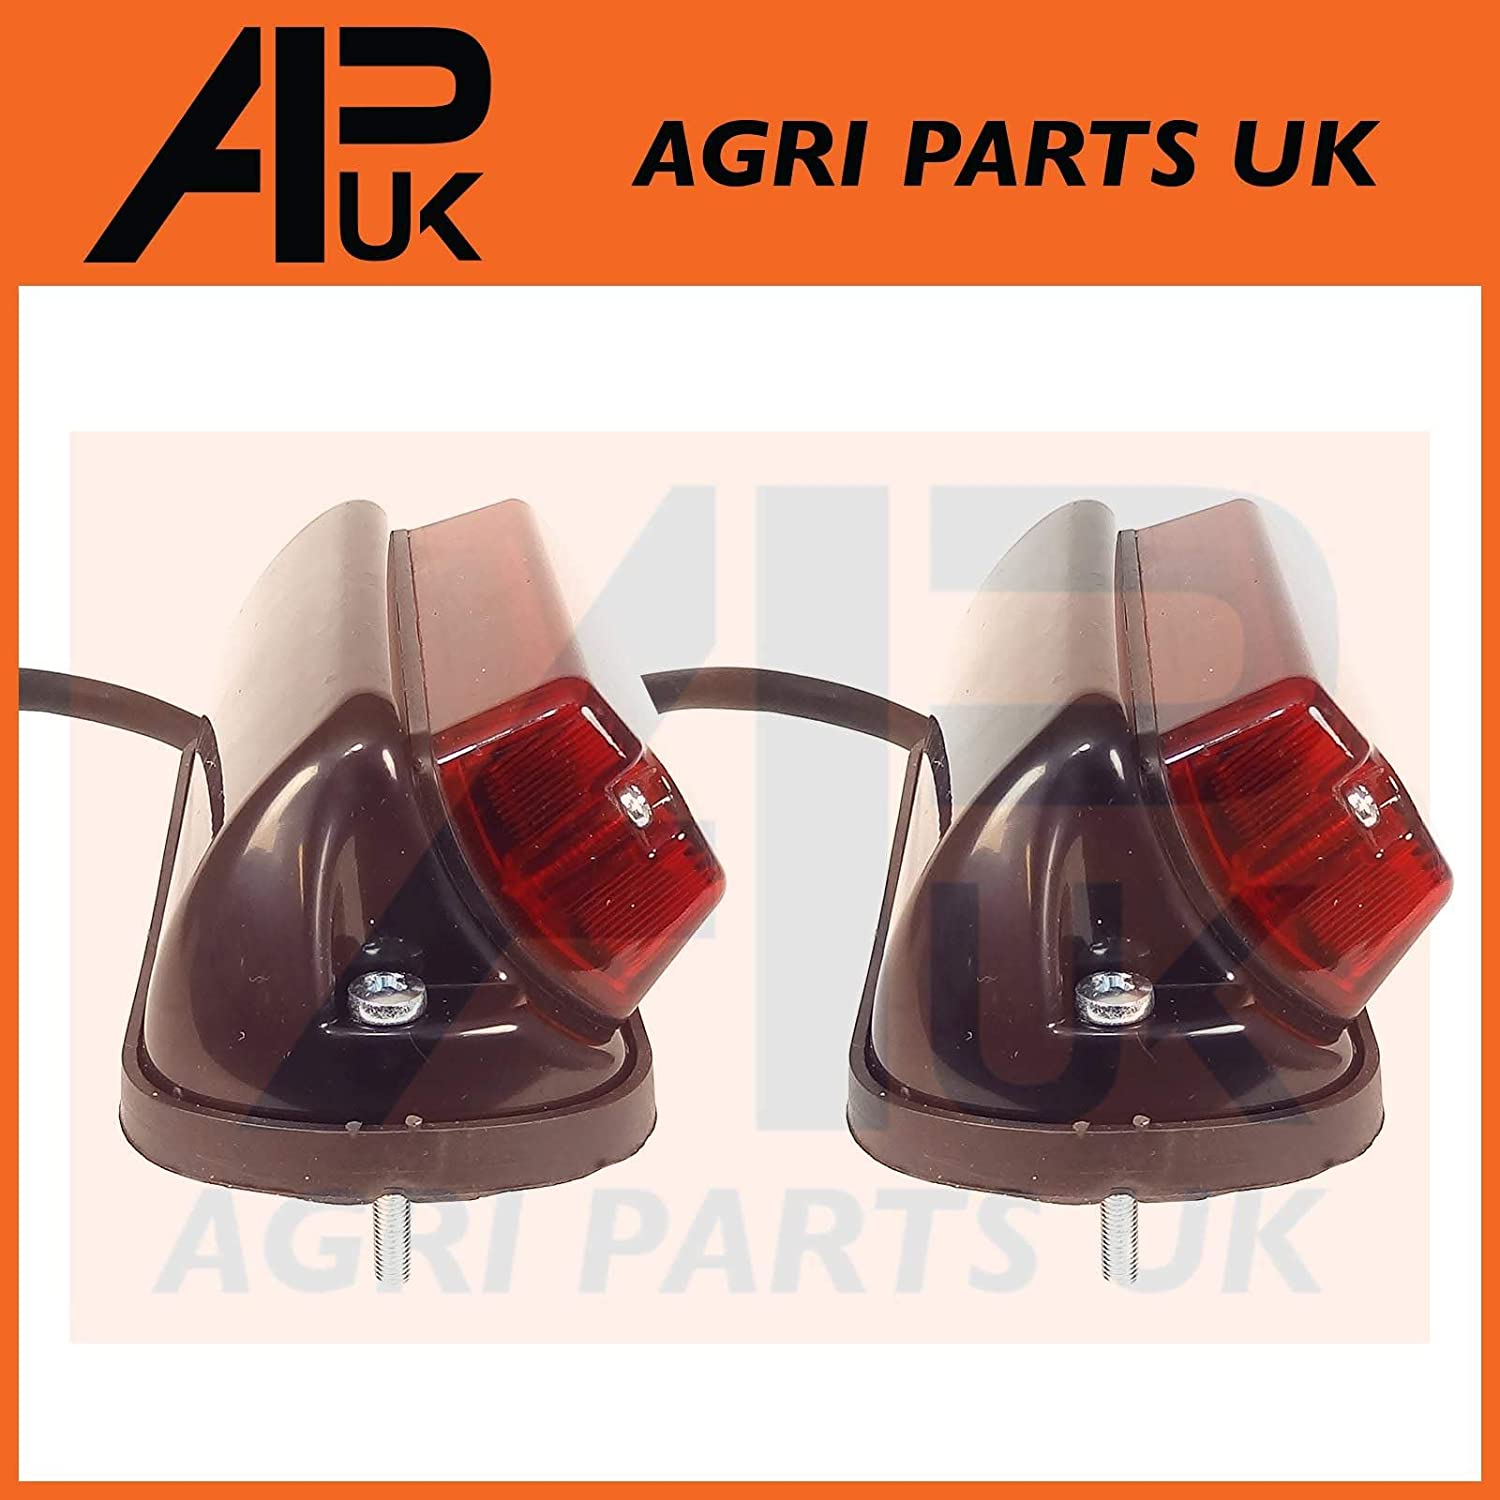 APUK PAIR of Rear Side Light Lamp Square Fender Plastic Compatible with Leyland Nuffield 345 465 Tractor